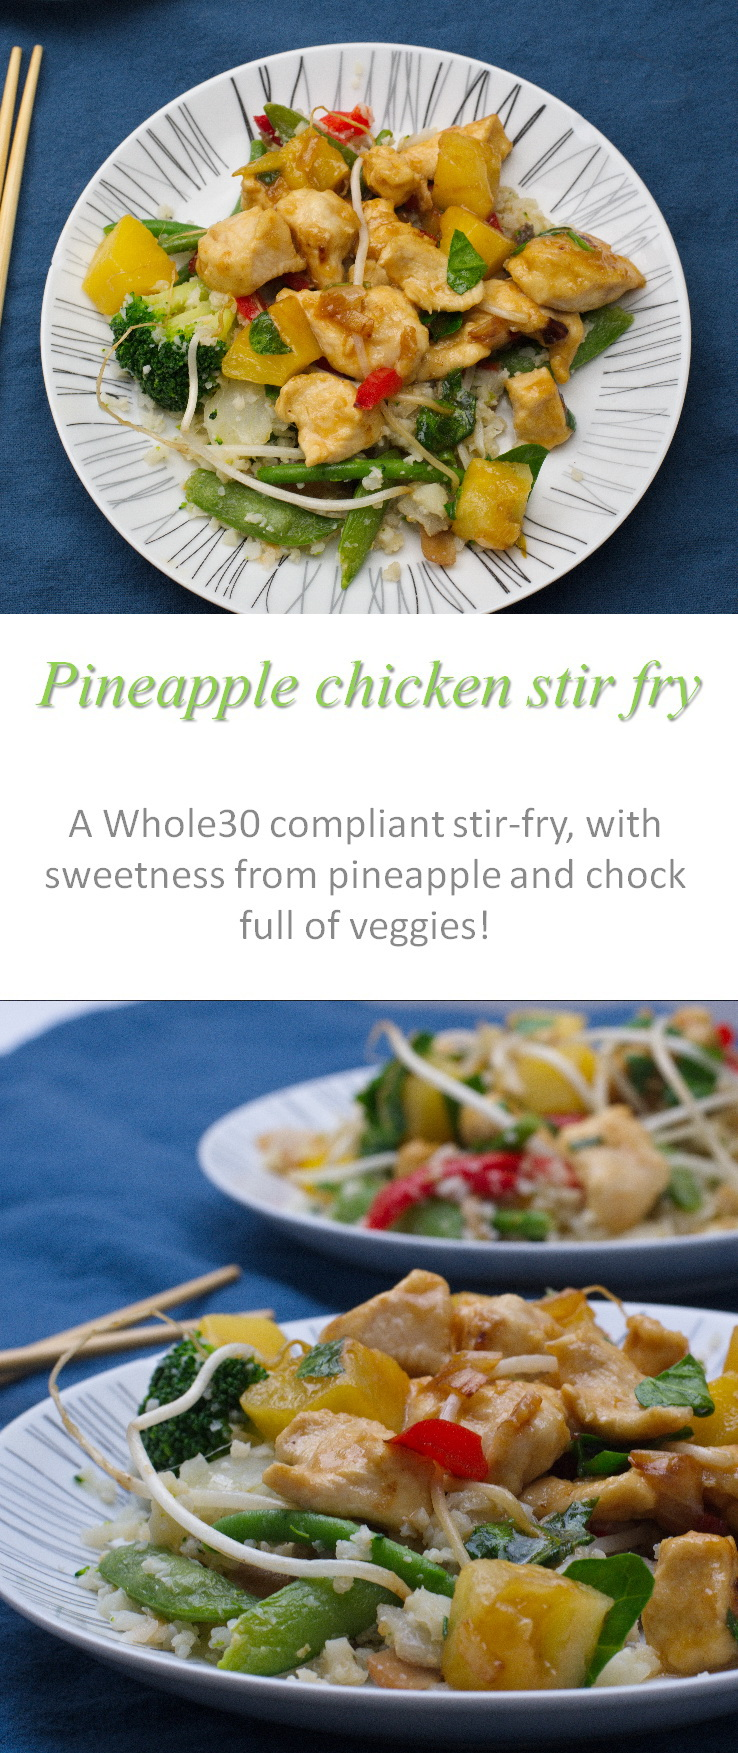 This Whole30 compliant pineapple chicken stir fry has sweetness from just the pineapple and is chock full of so many other veggies! #pineapple